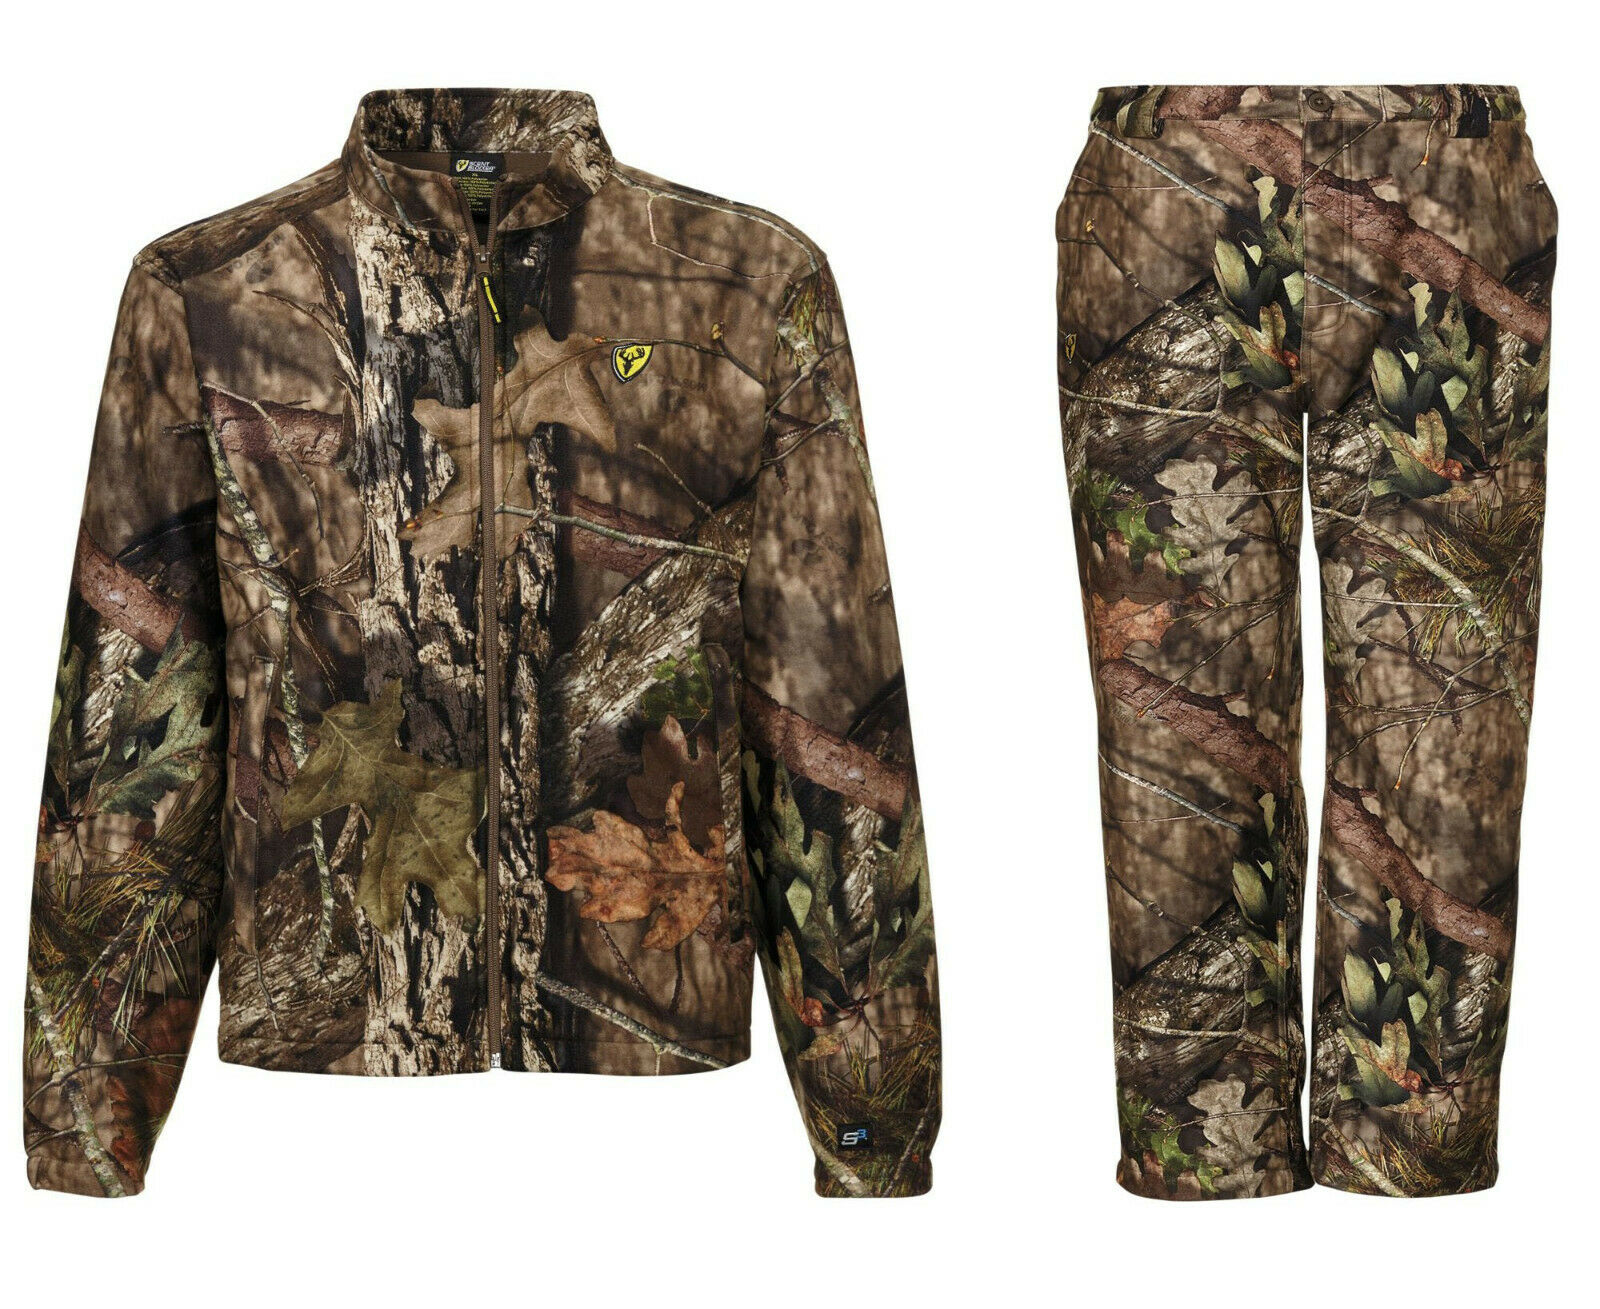 NEW Scent Blocker Axis Lightweight Hunting Jacket & Pant Mos